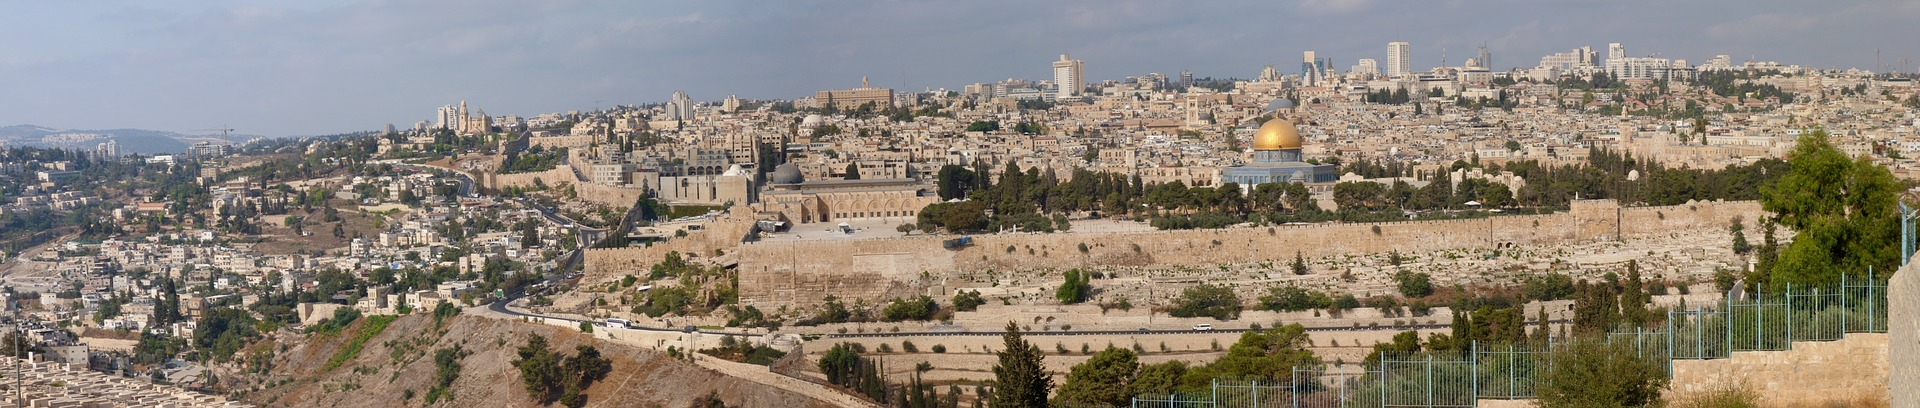 Panoramic view of Jerusalem, Israel